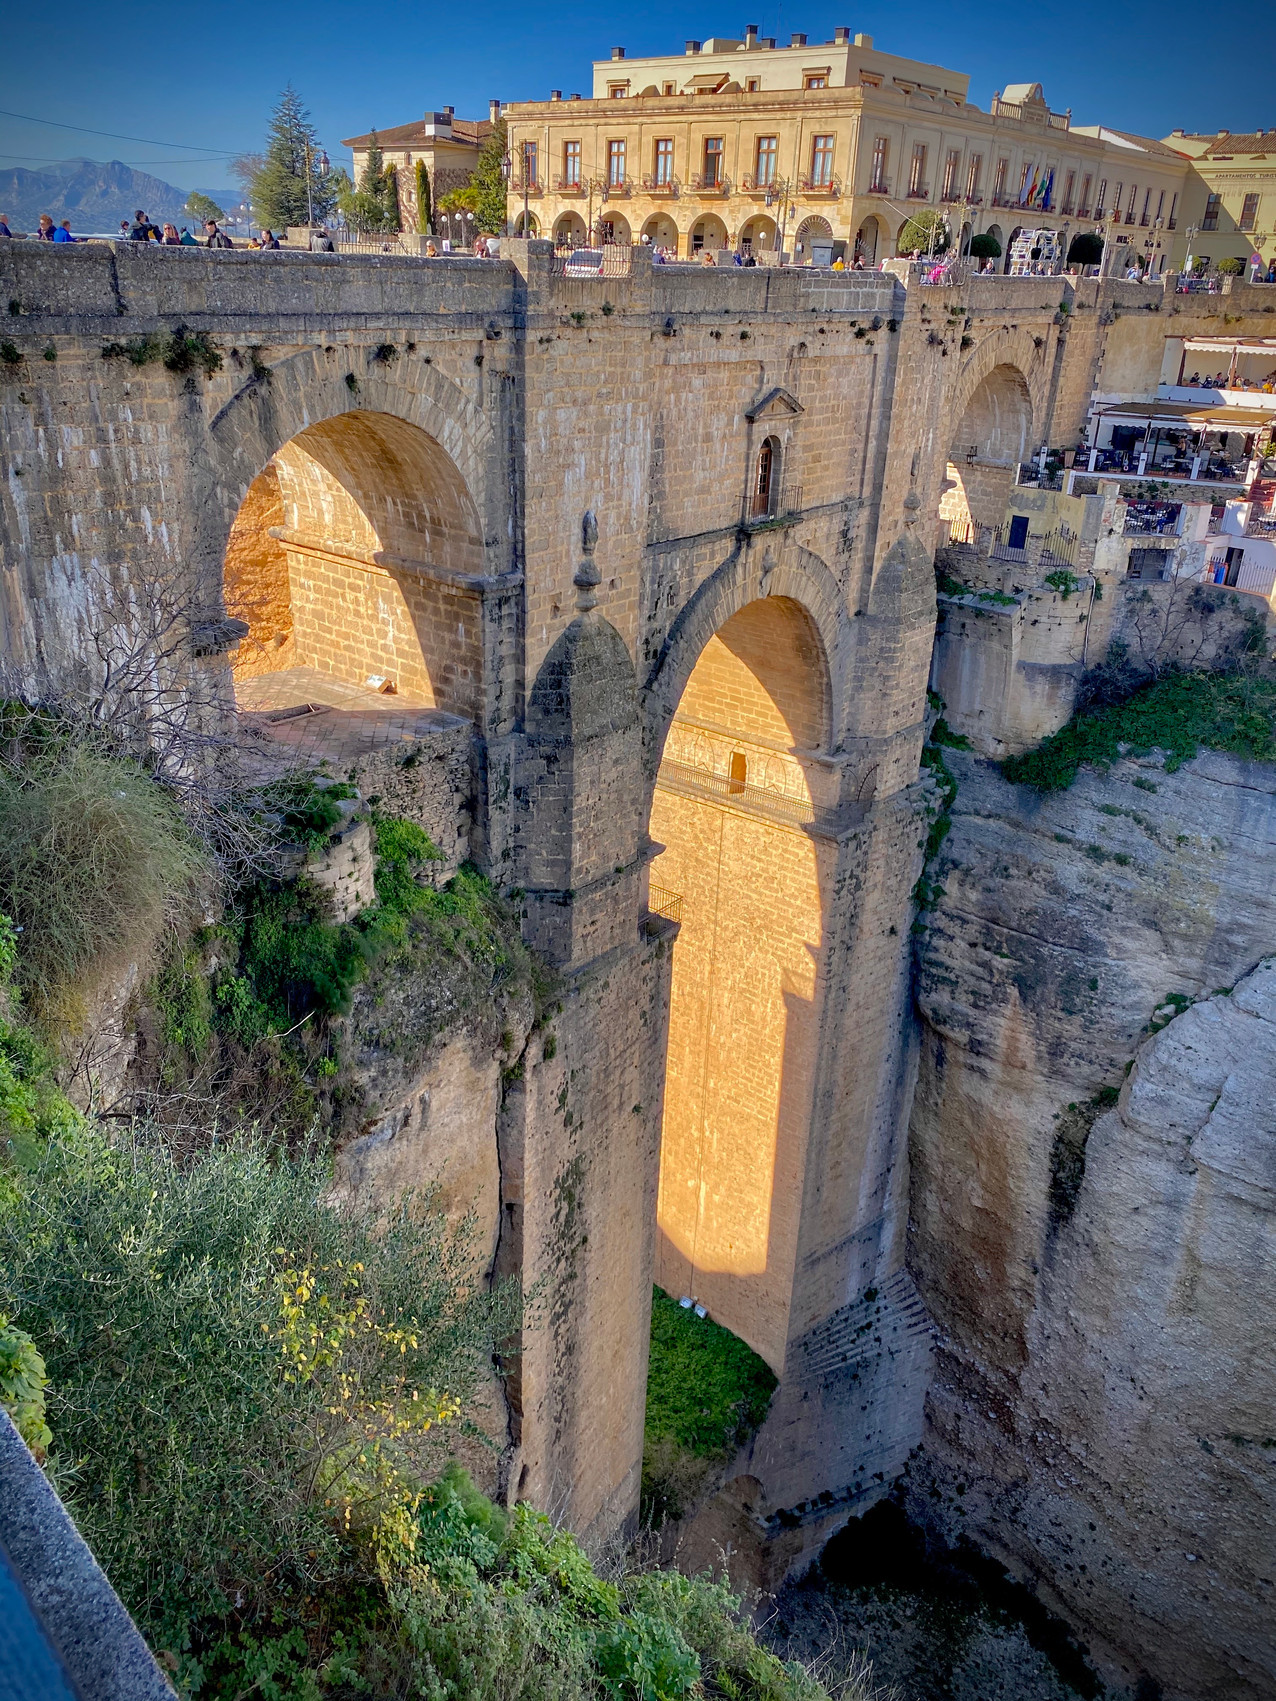 Puente Nuevo, Ronda Spain - See our complete Southern Spain road trip itinerary at Paradox Travels.